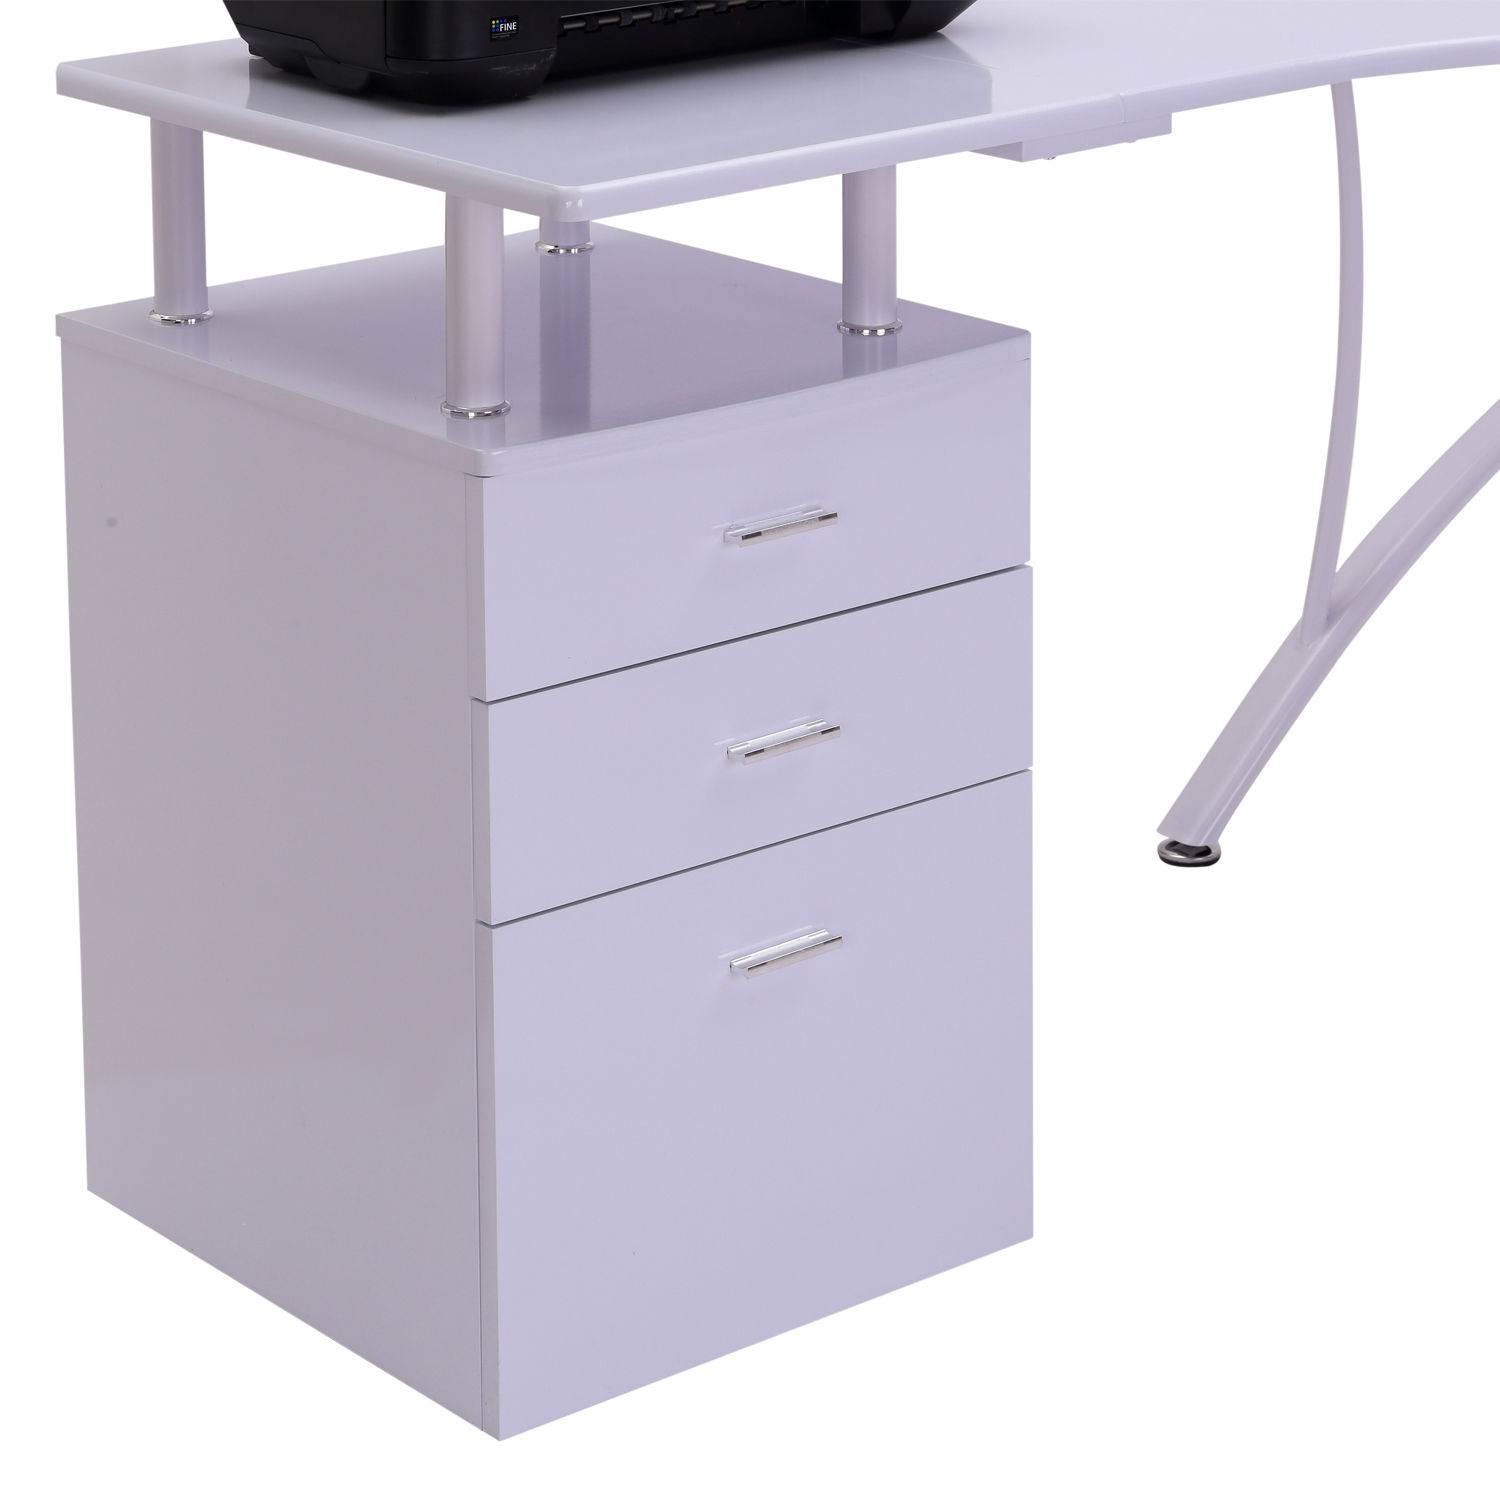 Modern Homeoffice Computer Desk: Corner Study Table L Shaped For Computer Desk PC Laptop